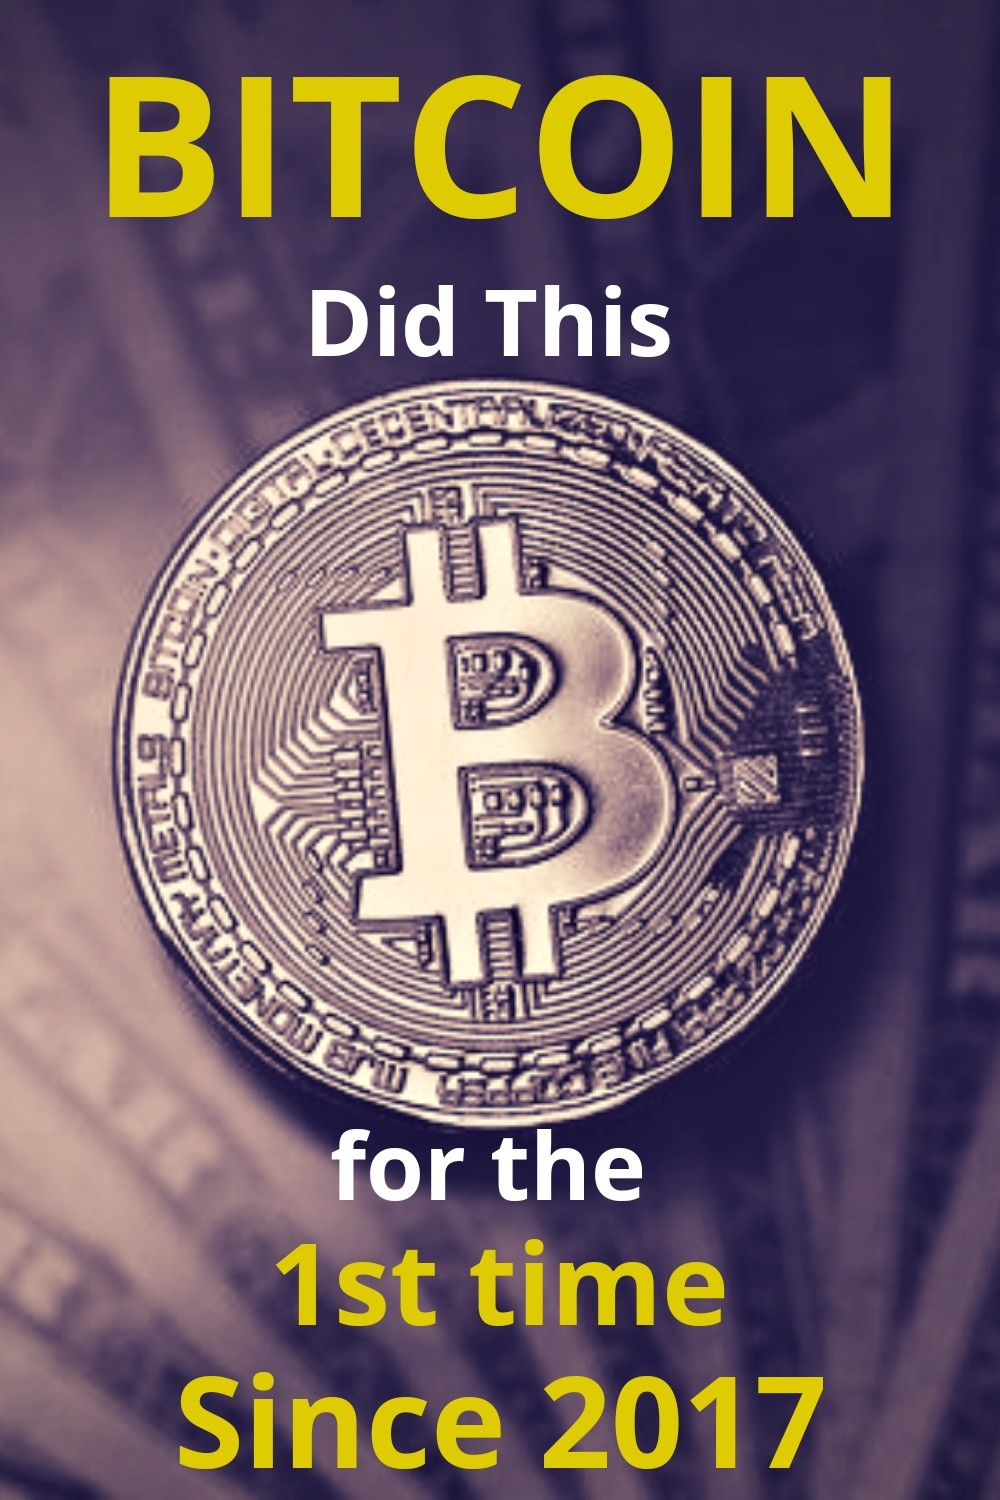 Bitcoin did this for the 1st time since 2017 in 2020